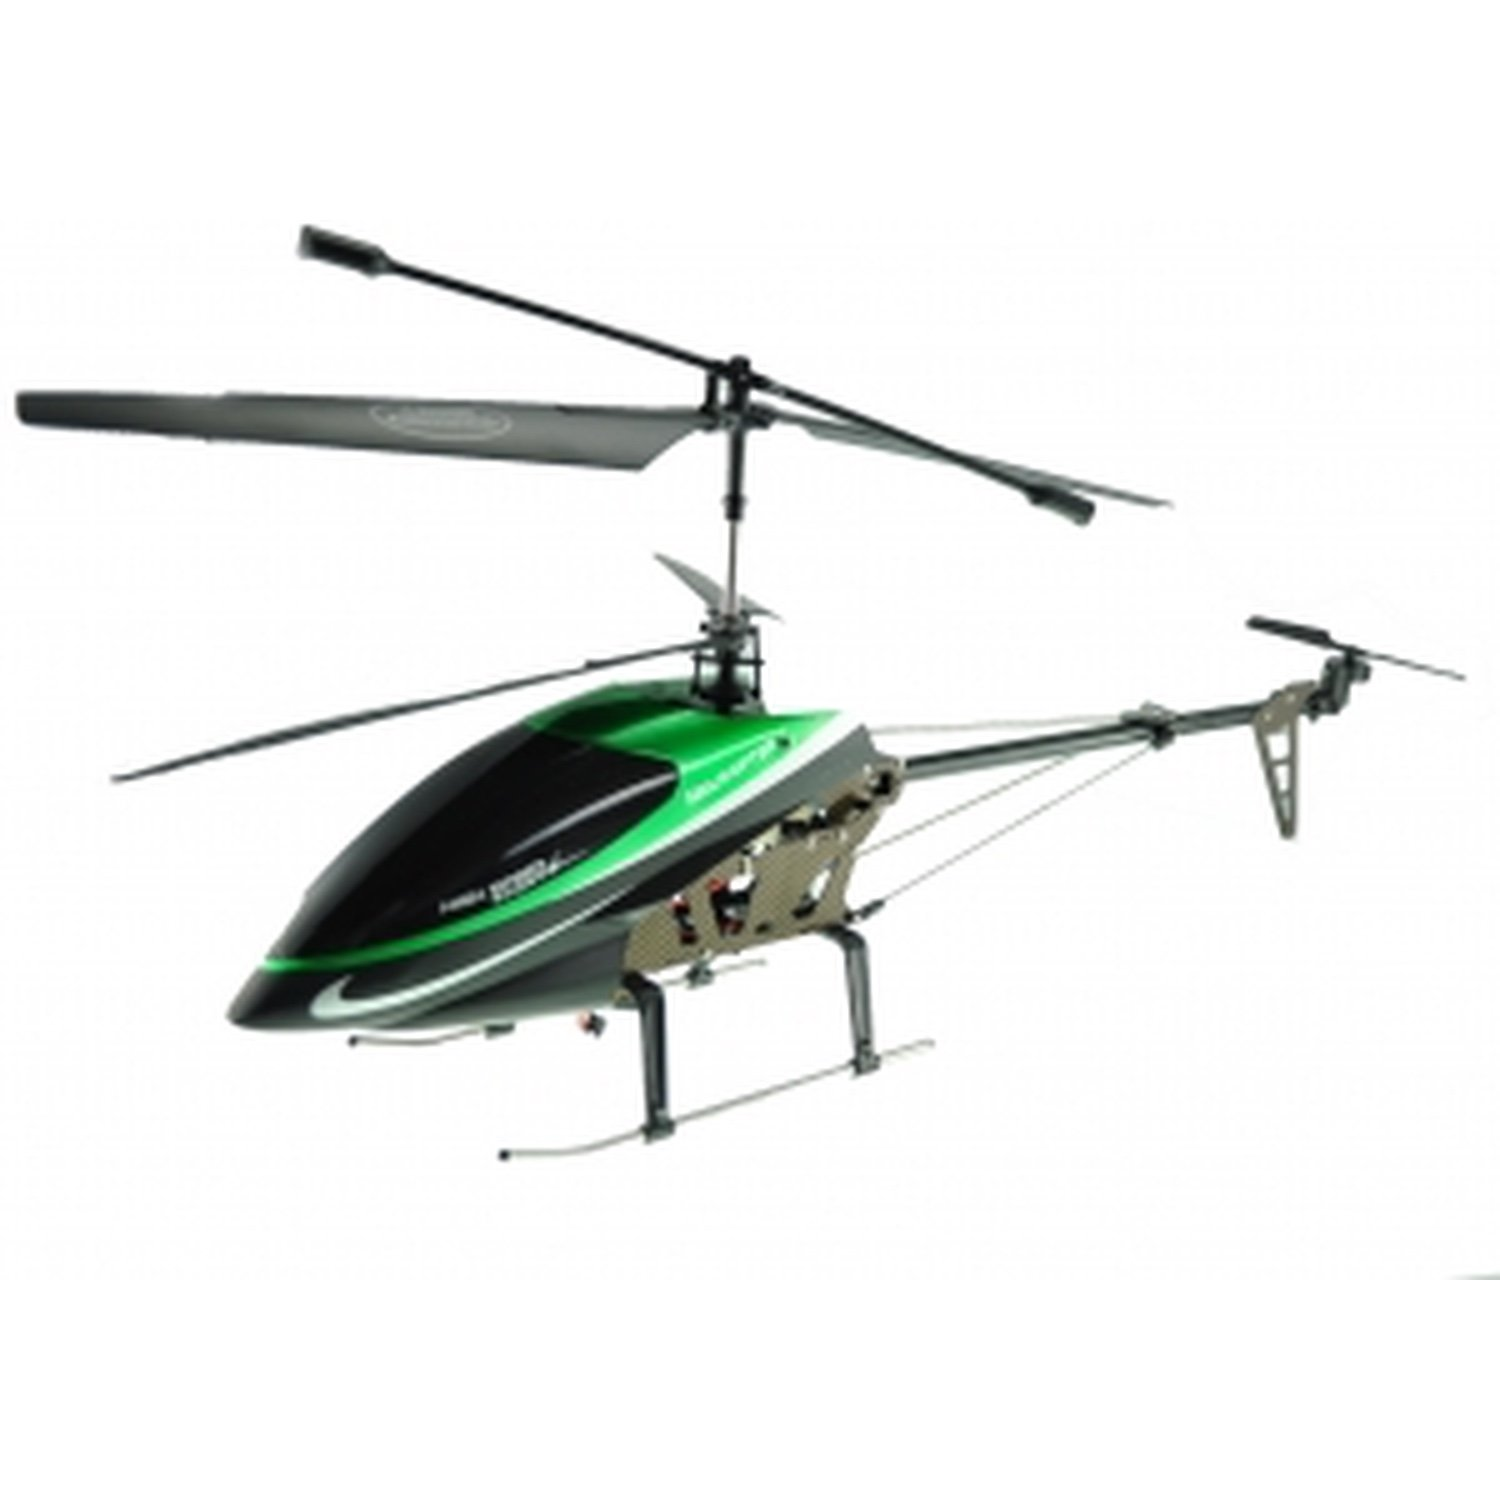 RC HELICOPTER MODEL F-28 () 3.5 CHANEL, GYROSCOPE, METALLIC ALLOY